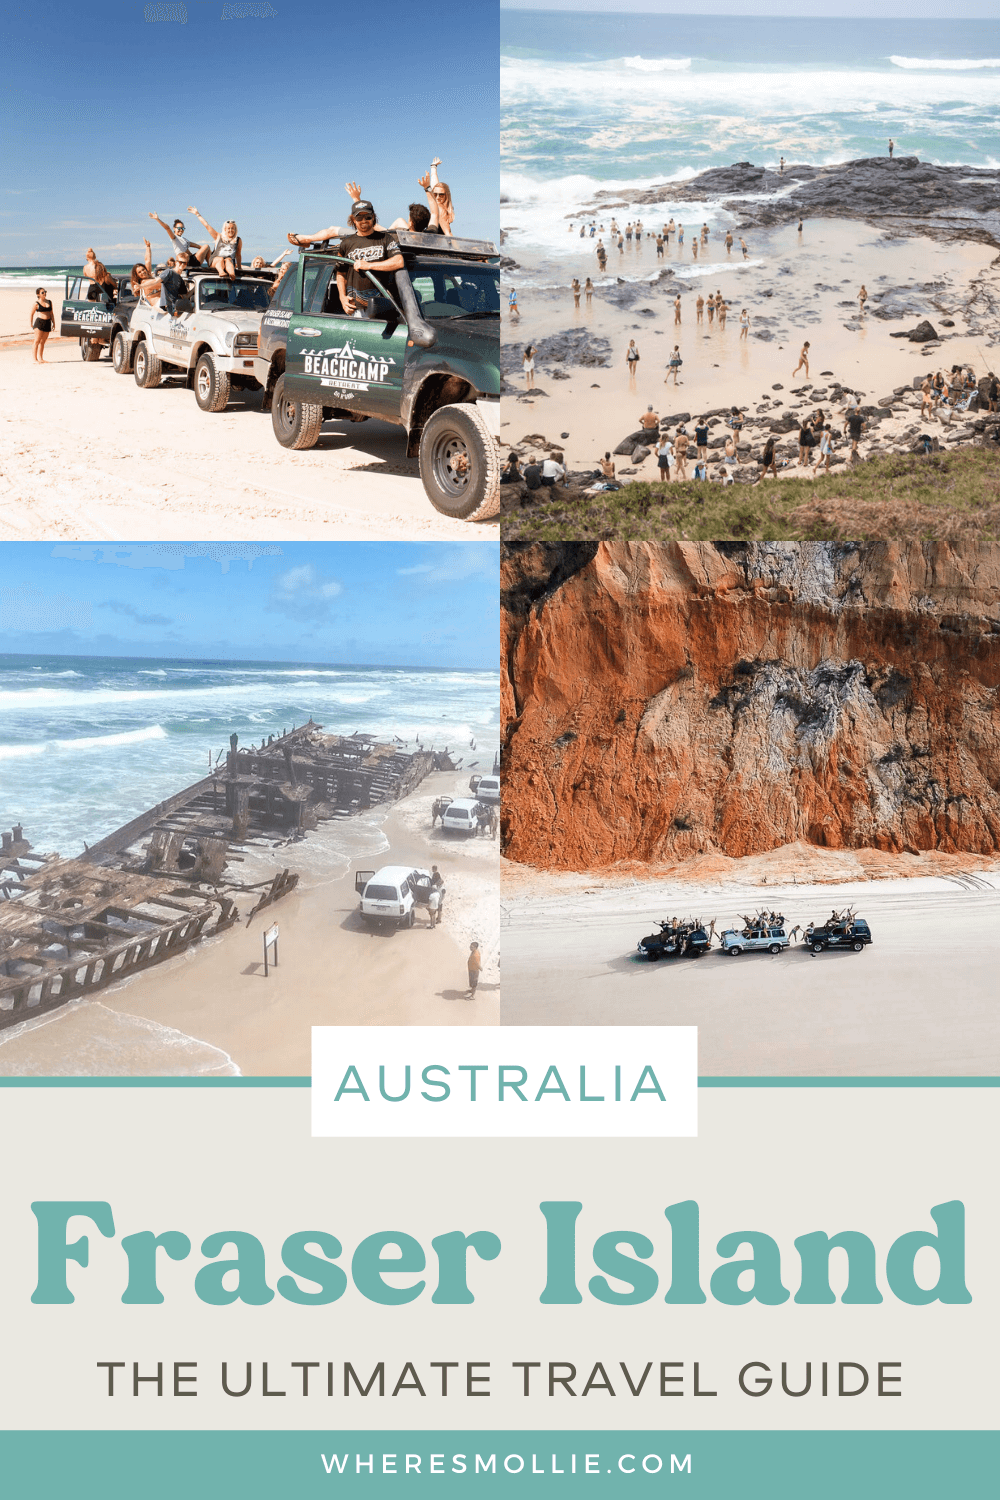 A guide to Fraser Island: which trip should you book?